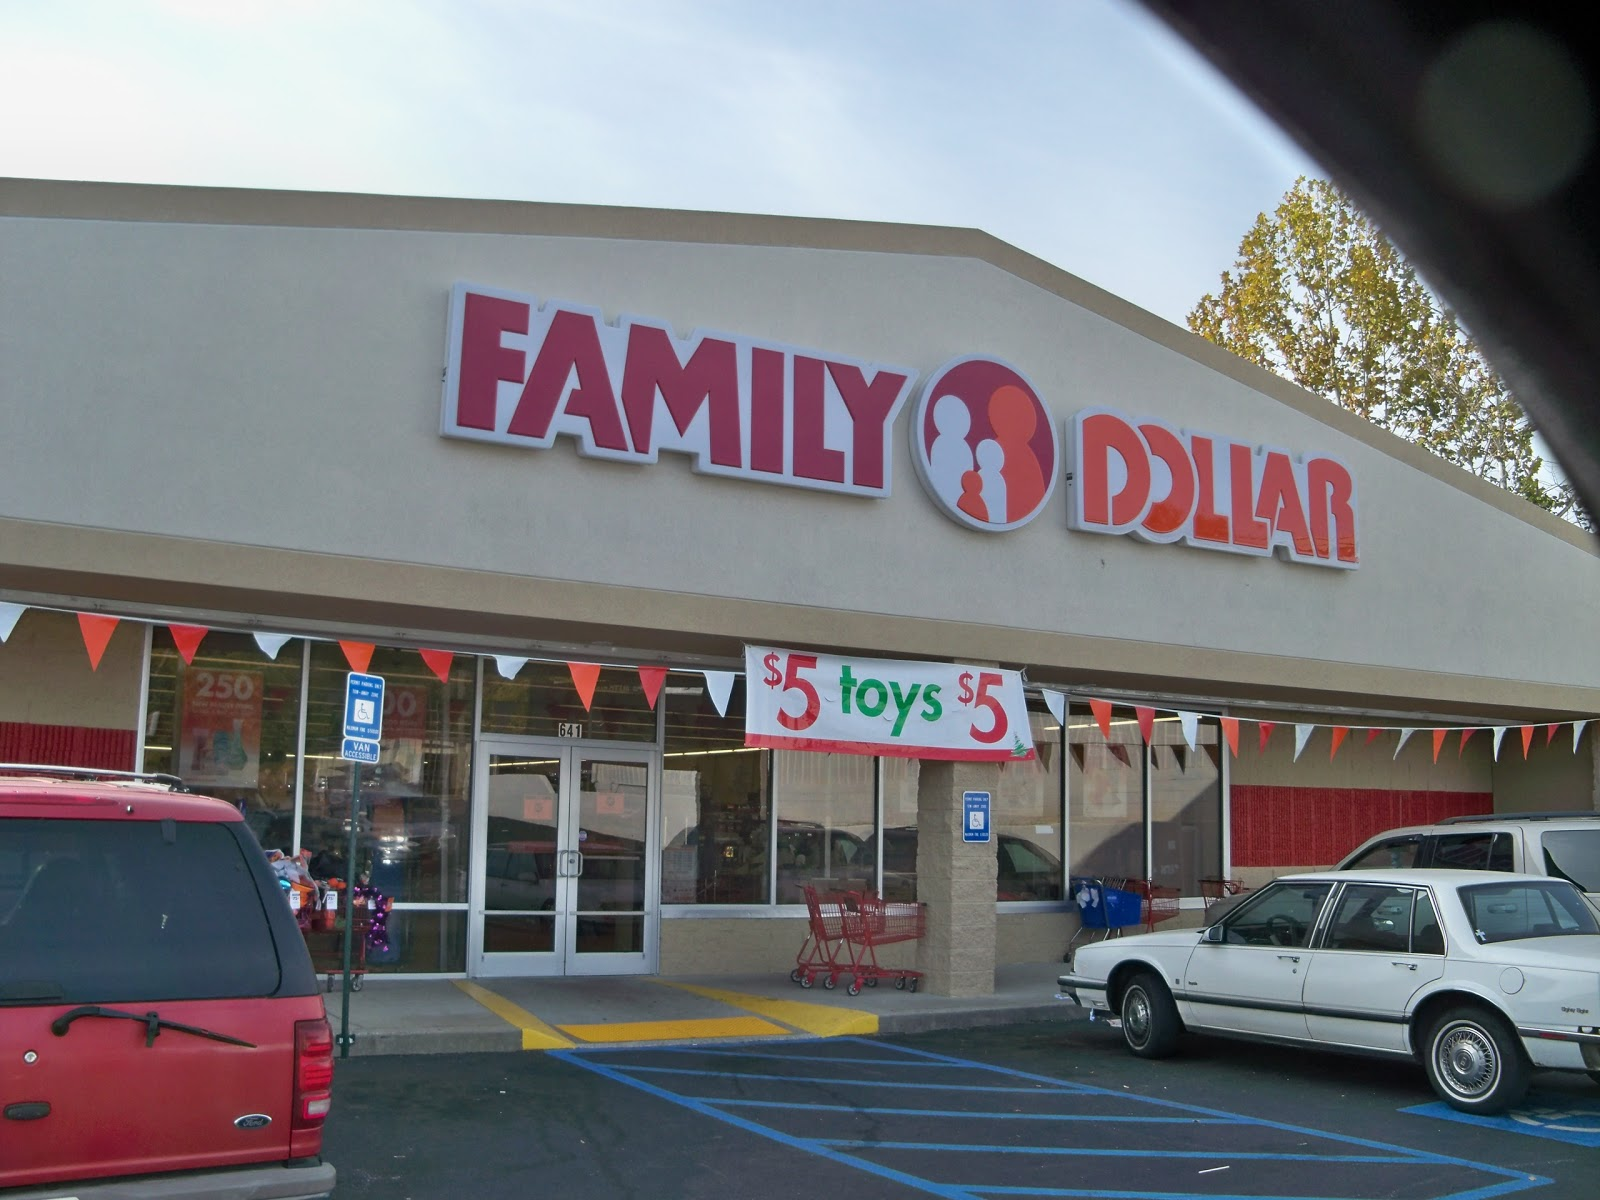 Family Dollar: Most Family Dollars are open on Christmas Day, some are open 24 hours while others have limited hours. Contact your local store for specific times. Starbucks: Besides picking up some coffee for the family, you can visit some Starbucks on Christmas Day to buy gifts like mugs, treats, and of course gift cards.